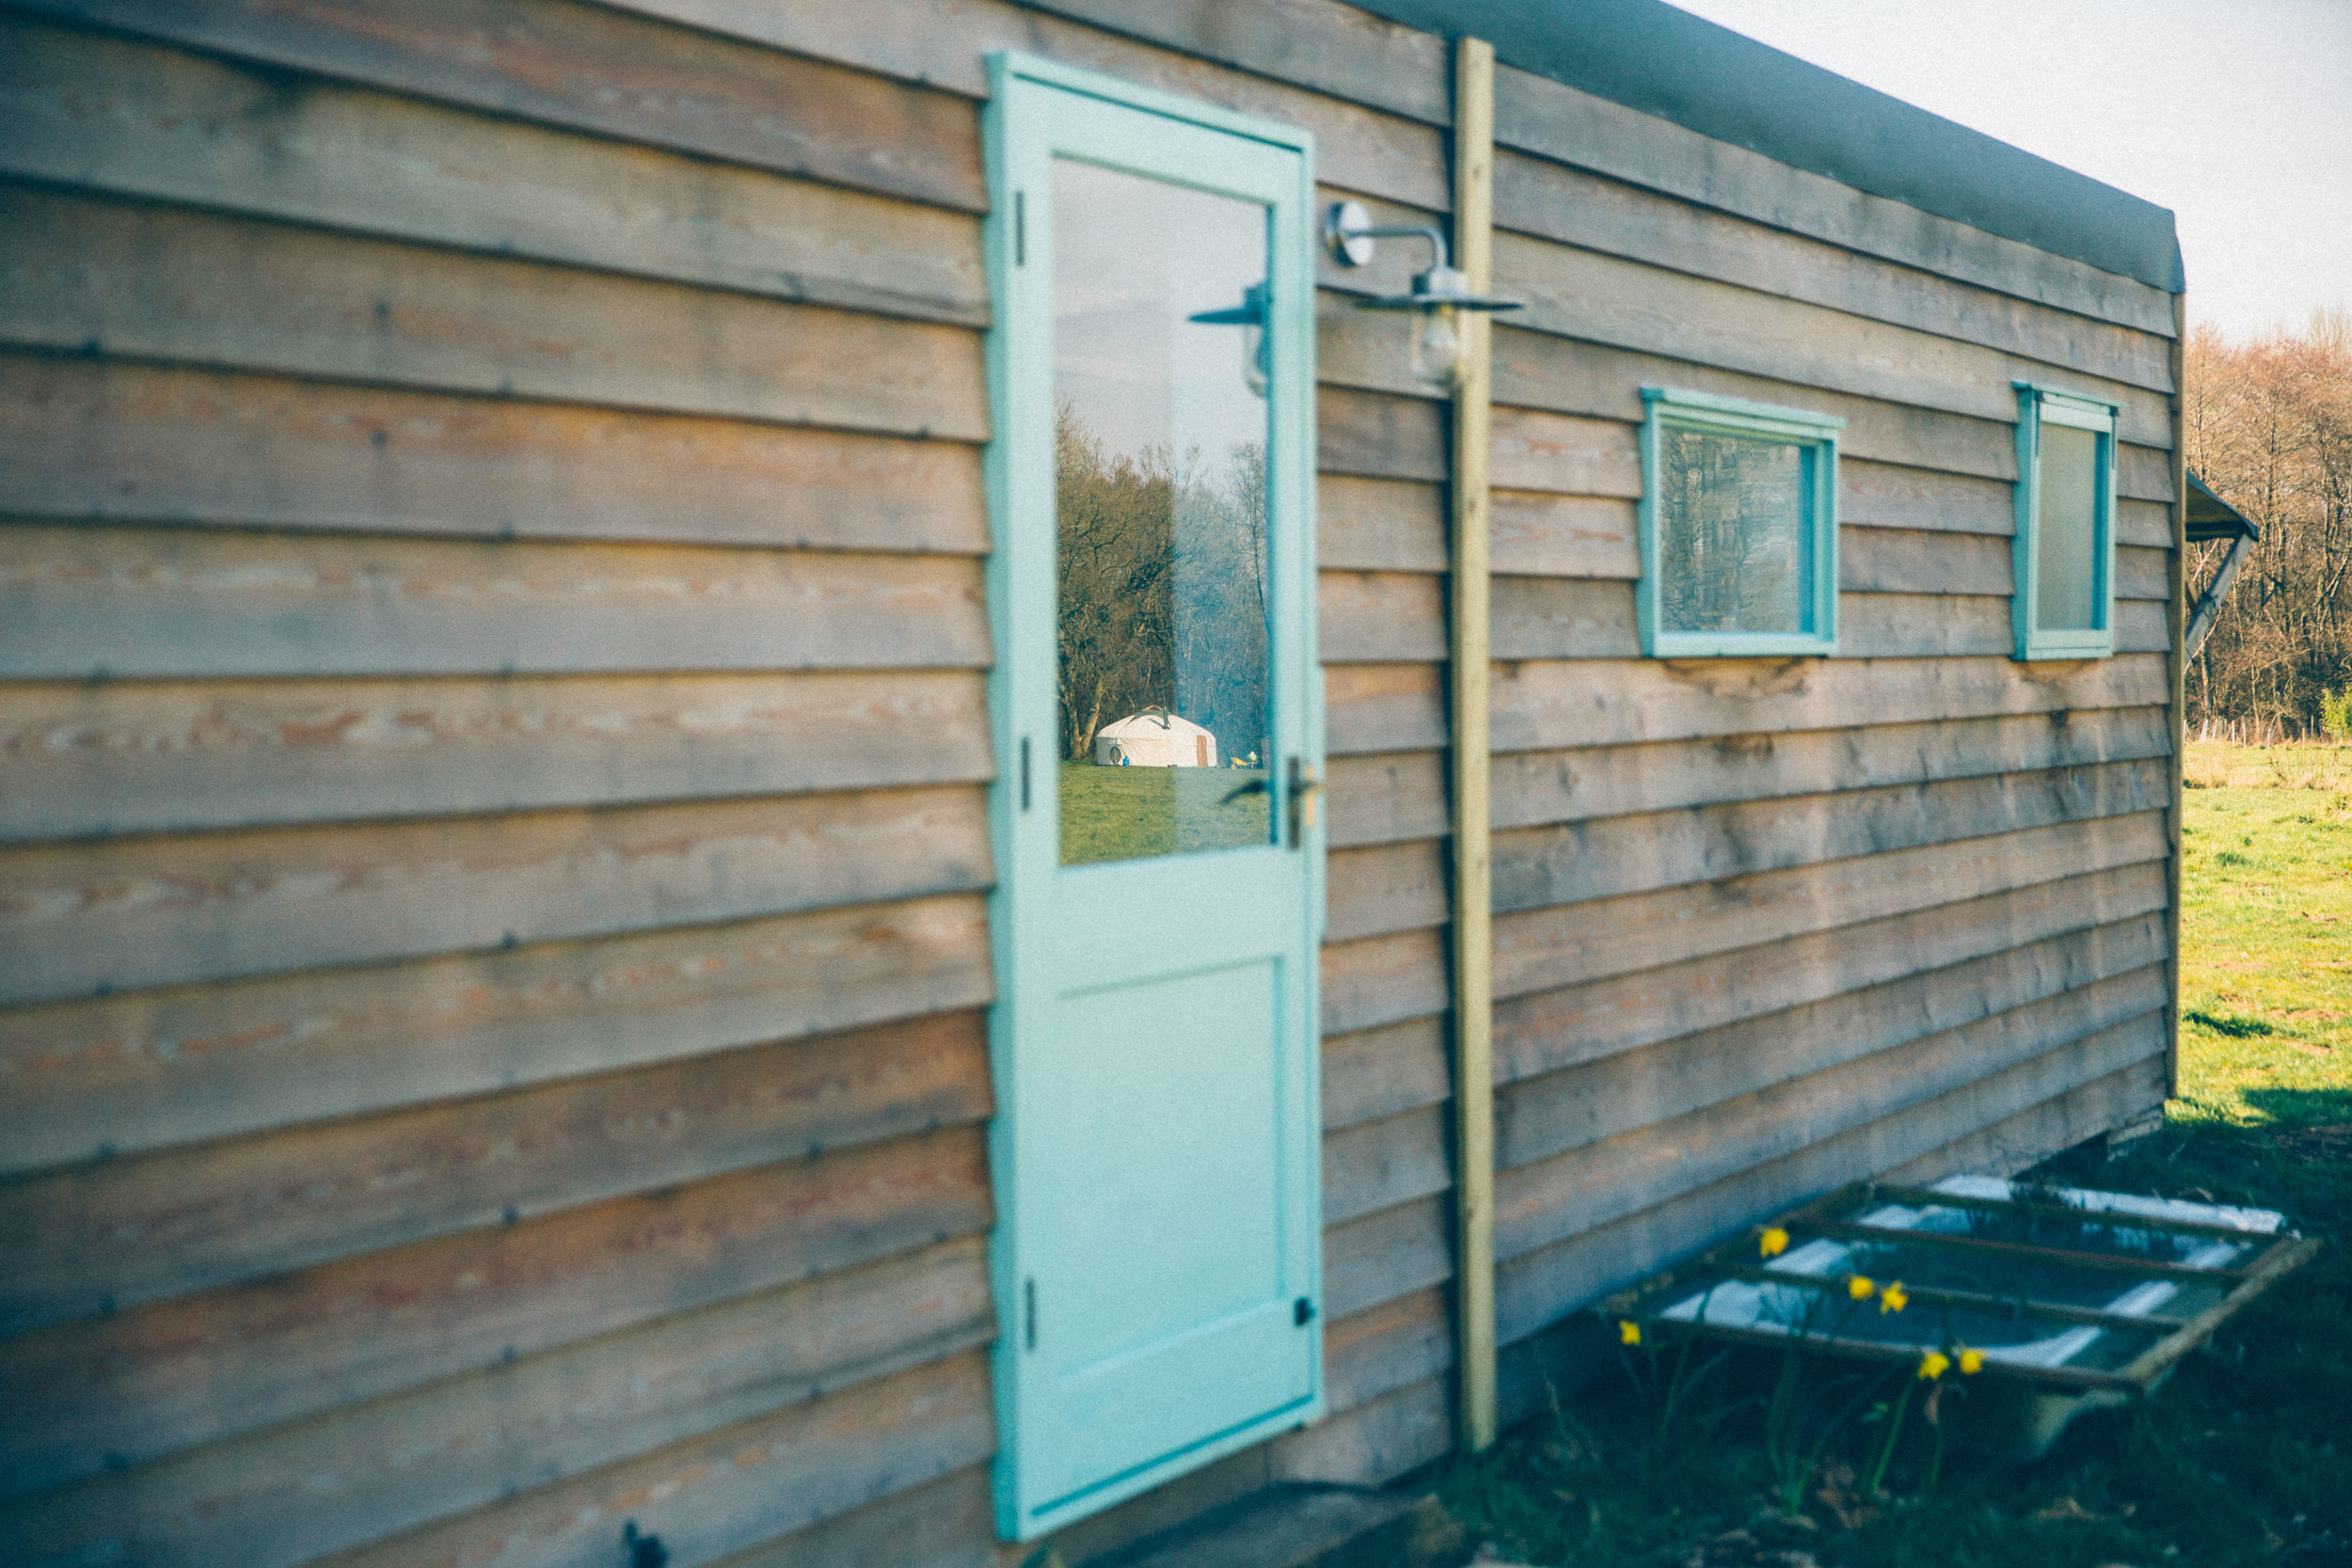 Shipping container shower building conversion